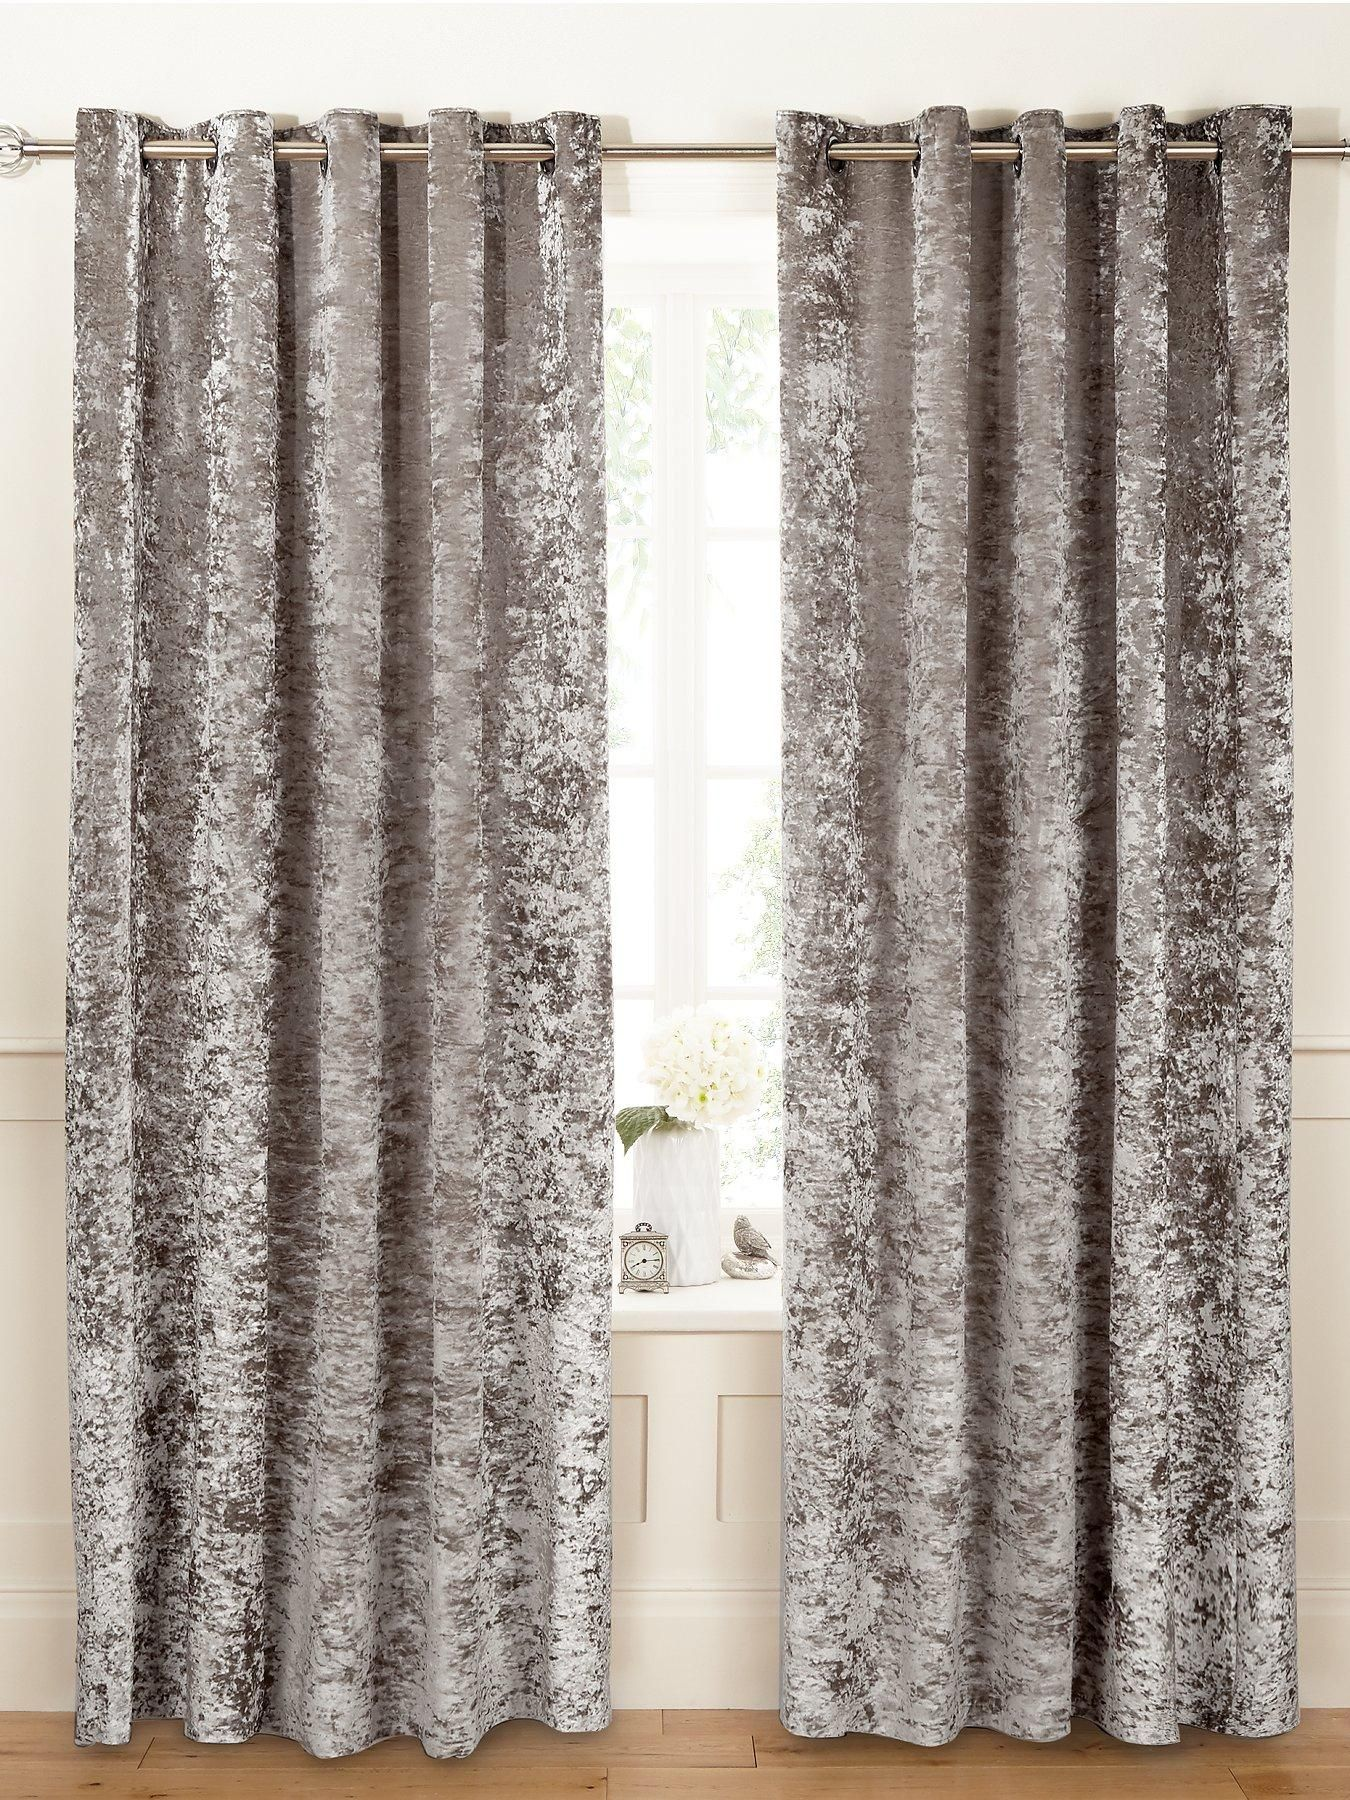 Luxe collection luxury crushed velvet lined eyelet curtains in